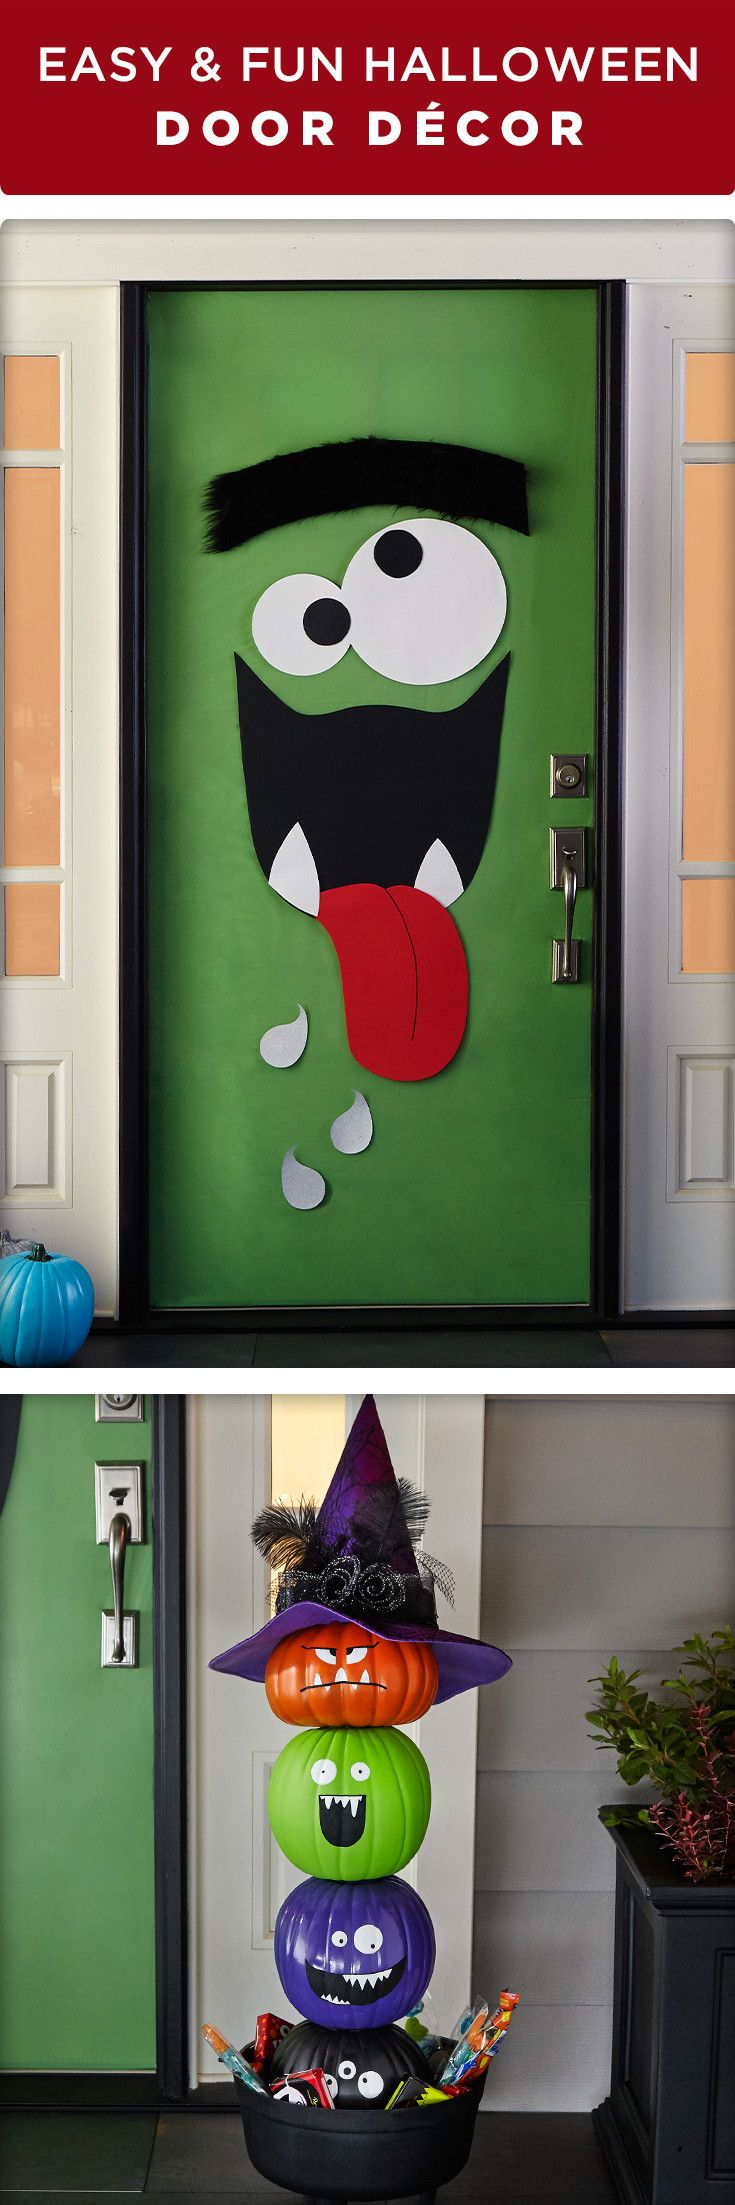 Decorating Ideas > 1000+ Halloween Decorating Ideas On Pinterest  Halloween  ~ 153254_Halloween Door Ideas School